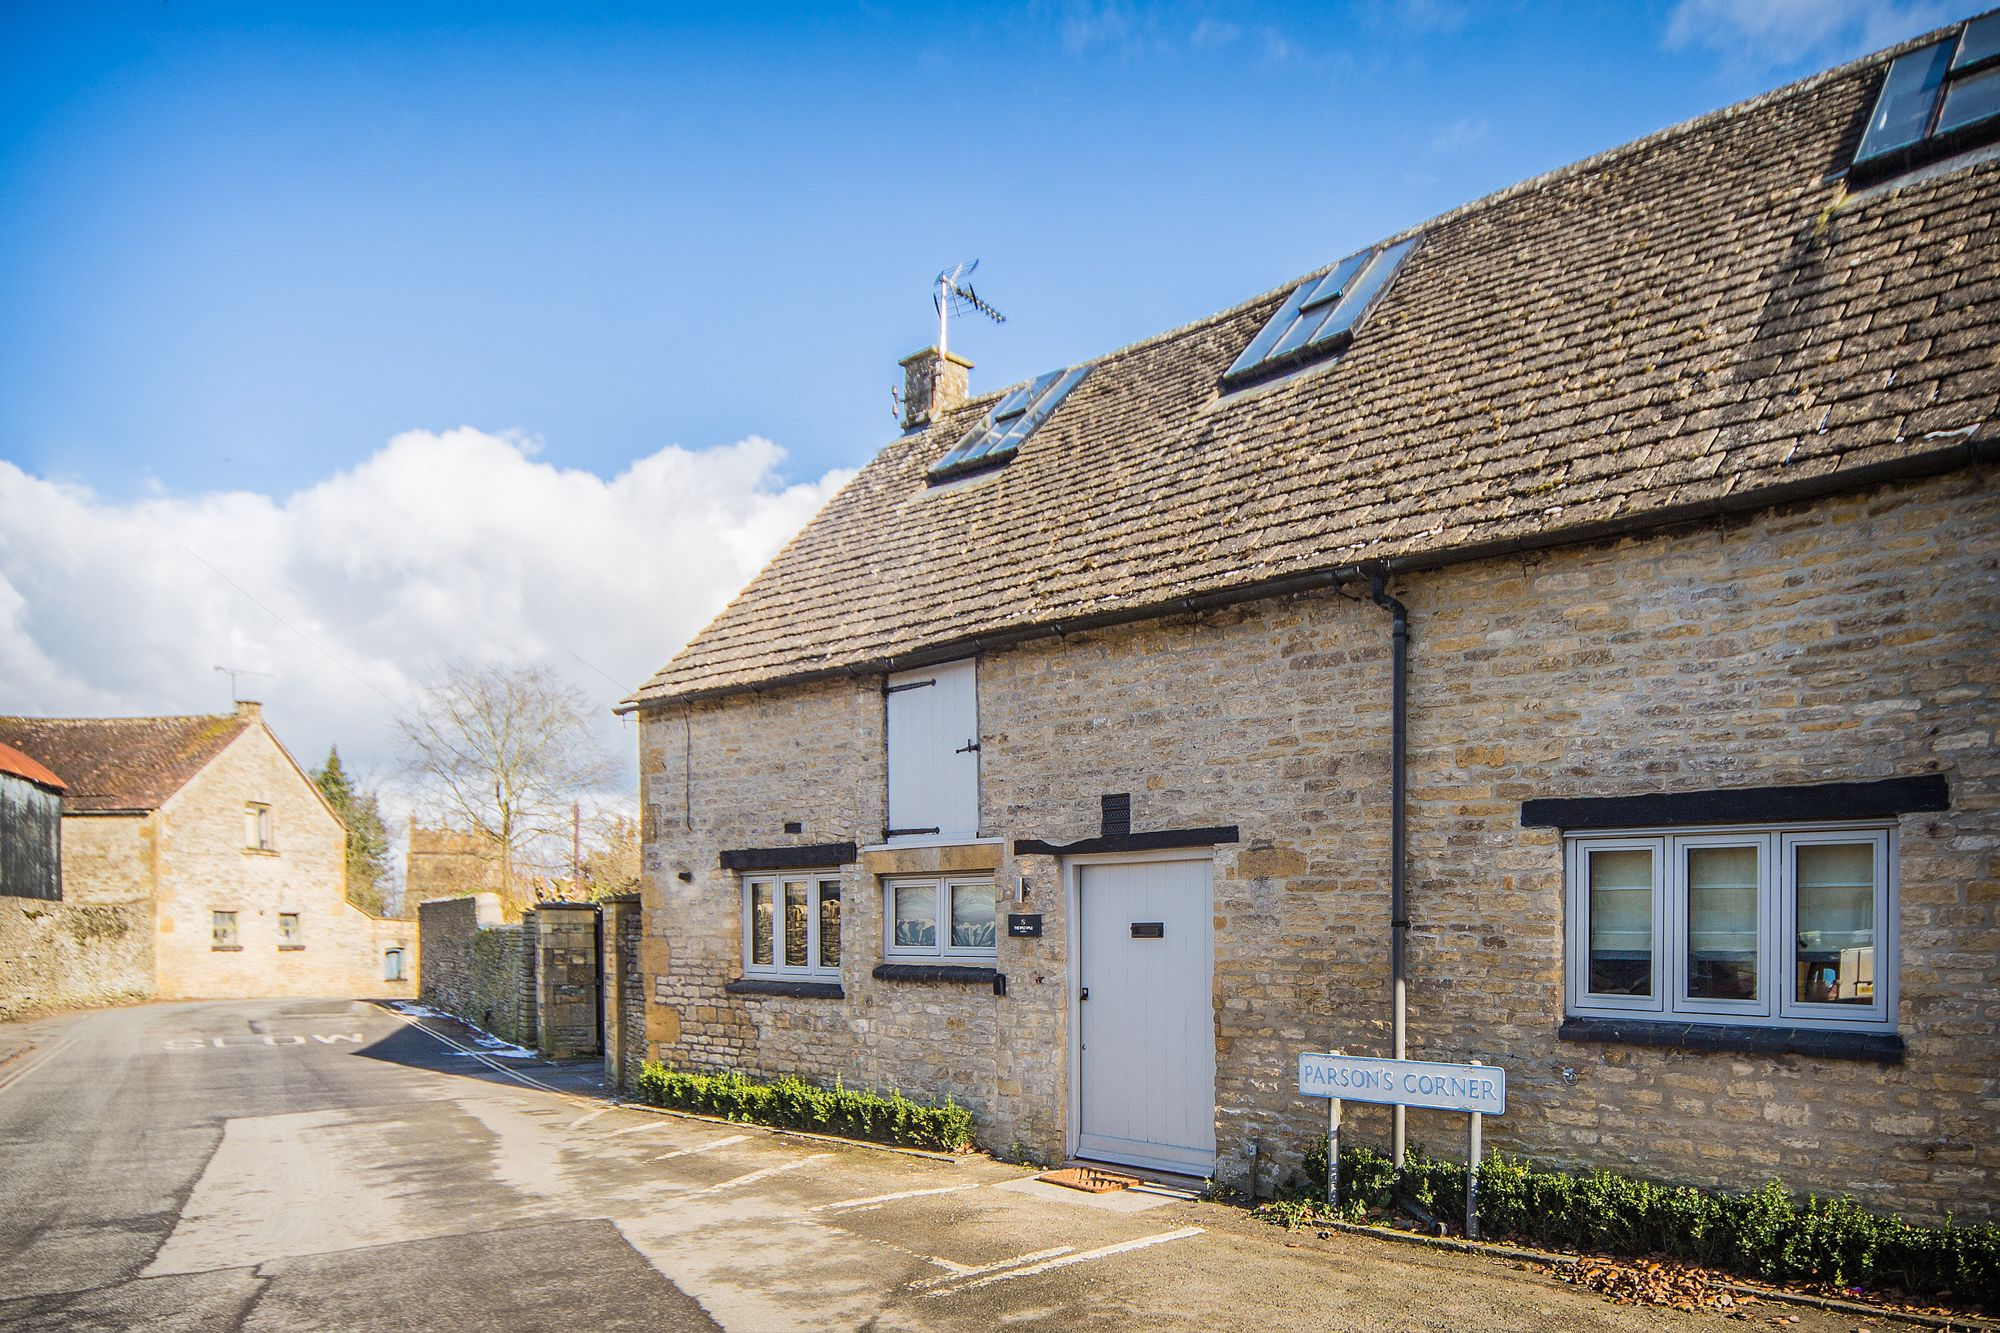 Self-Catering in Stow-on-the-Wold holidays at Cool Places